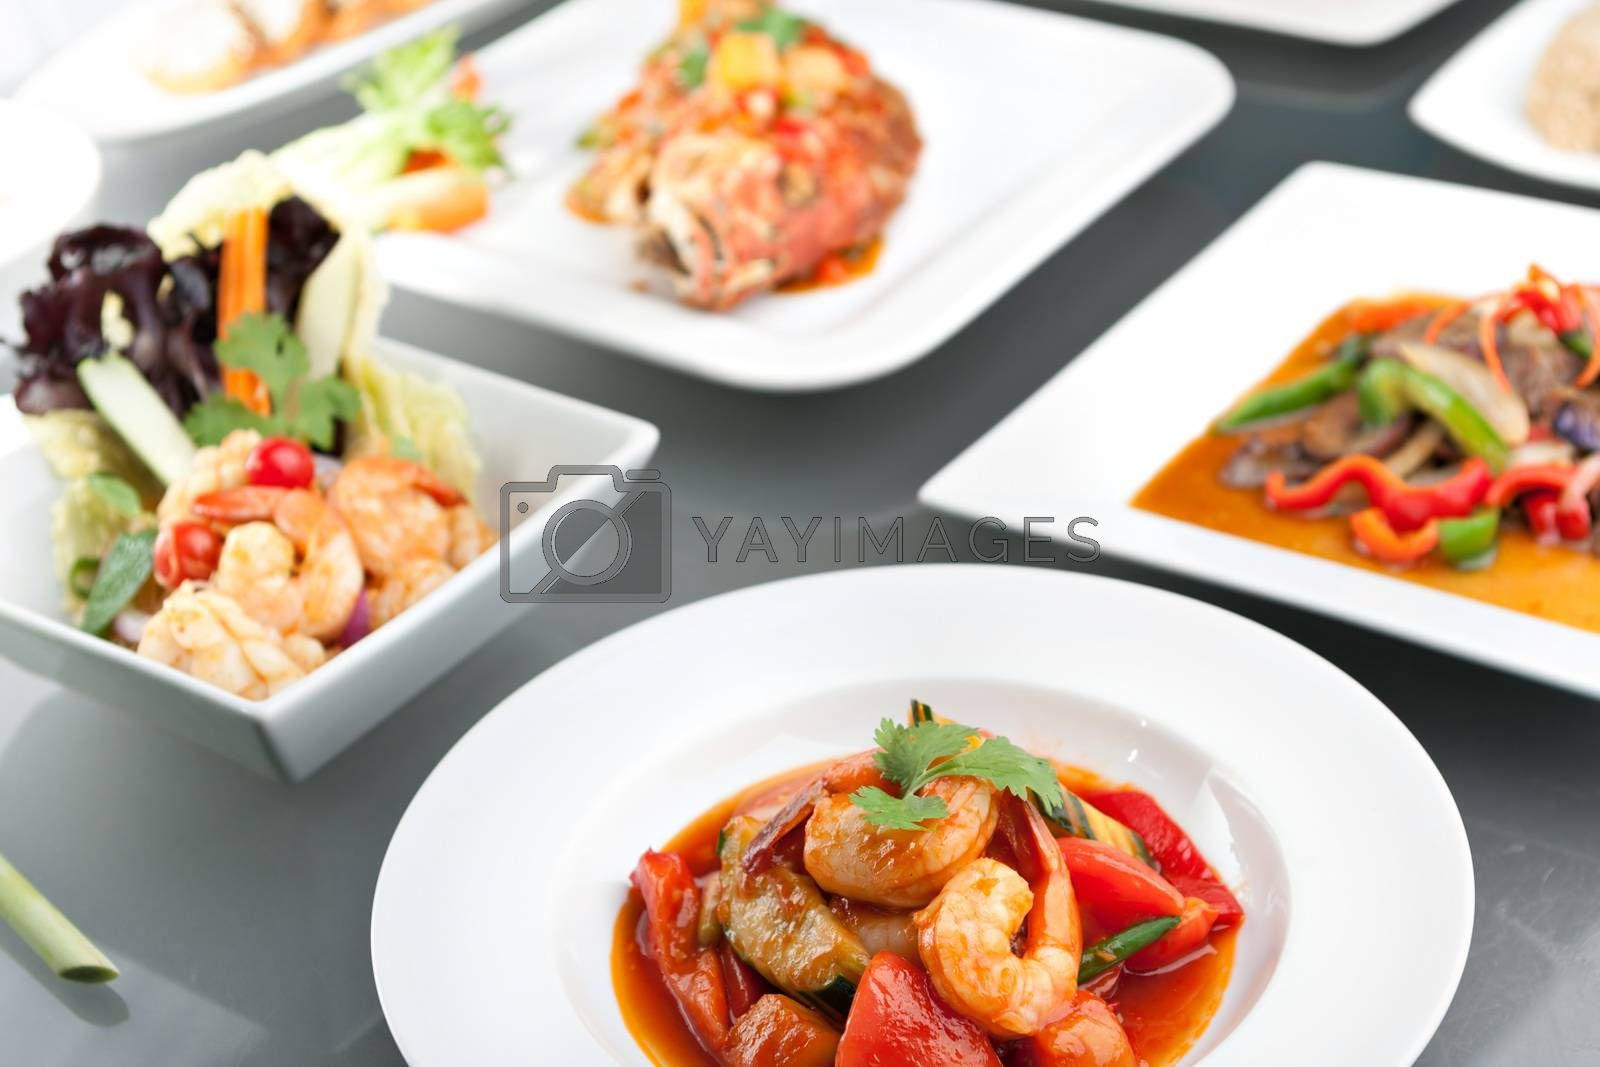 Variety of Thai style whole fish red snapper sweet and sour shrimp gyoza dumplings sesame breads seafood salad and other spicy Thai dishes.